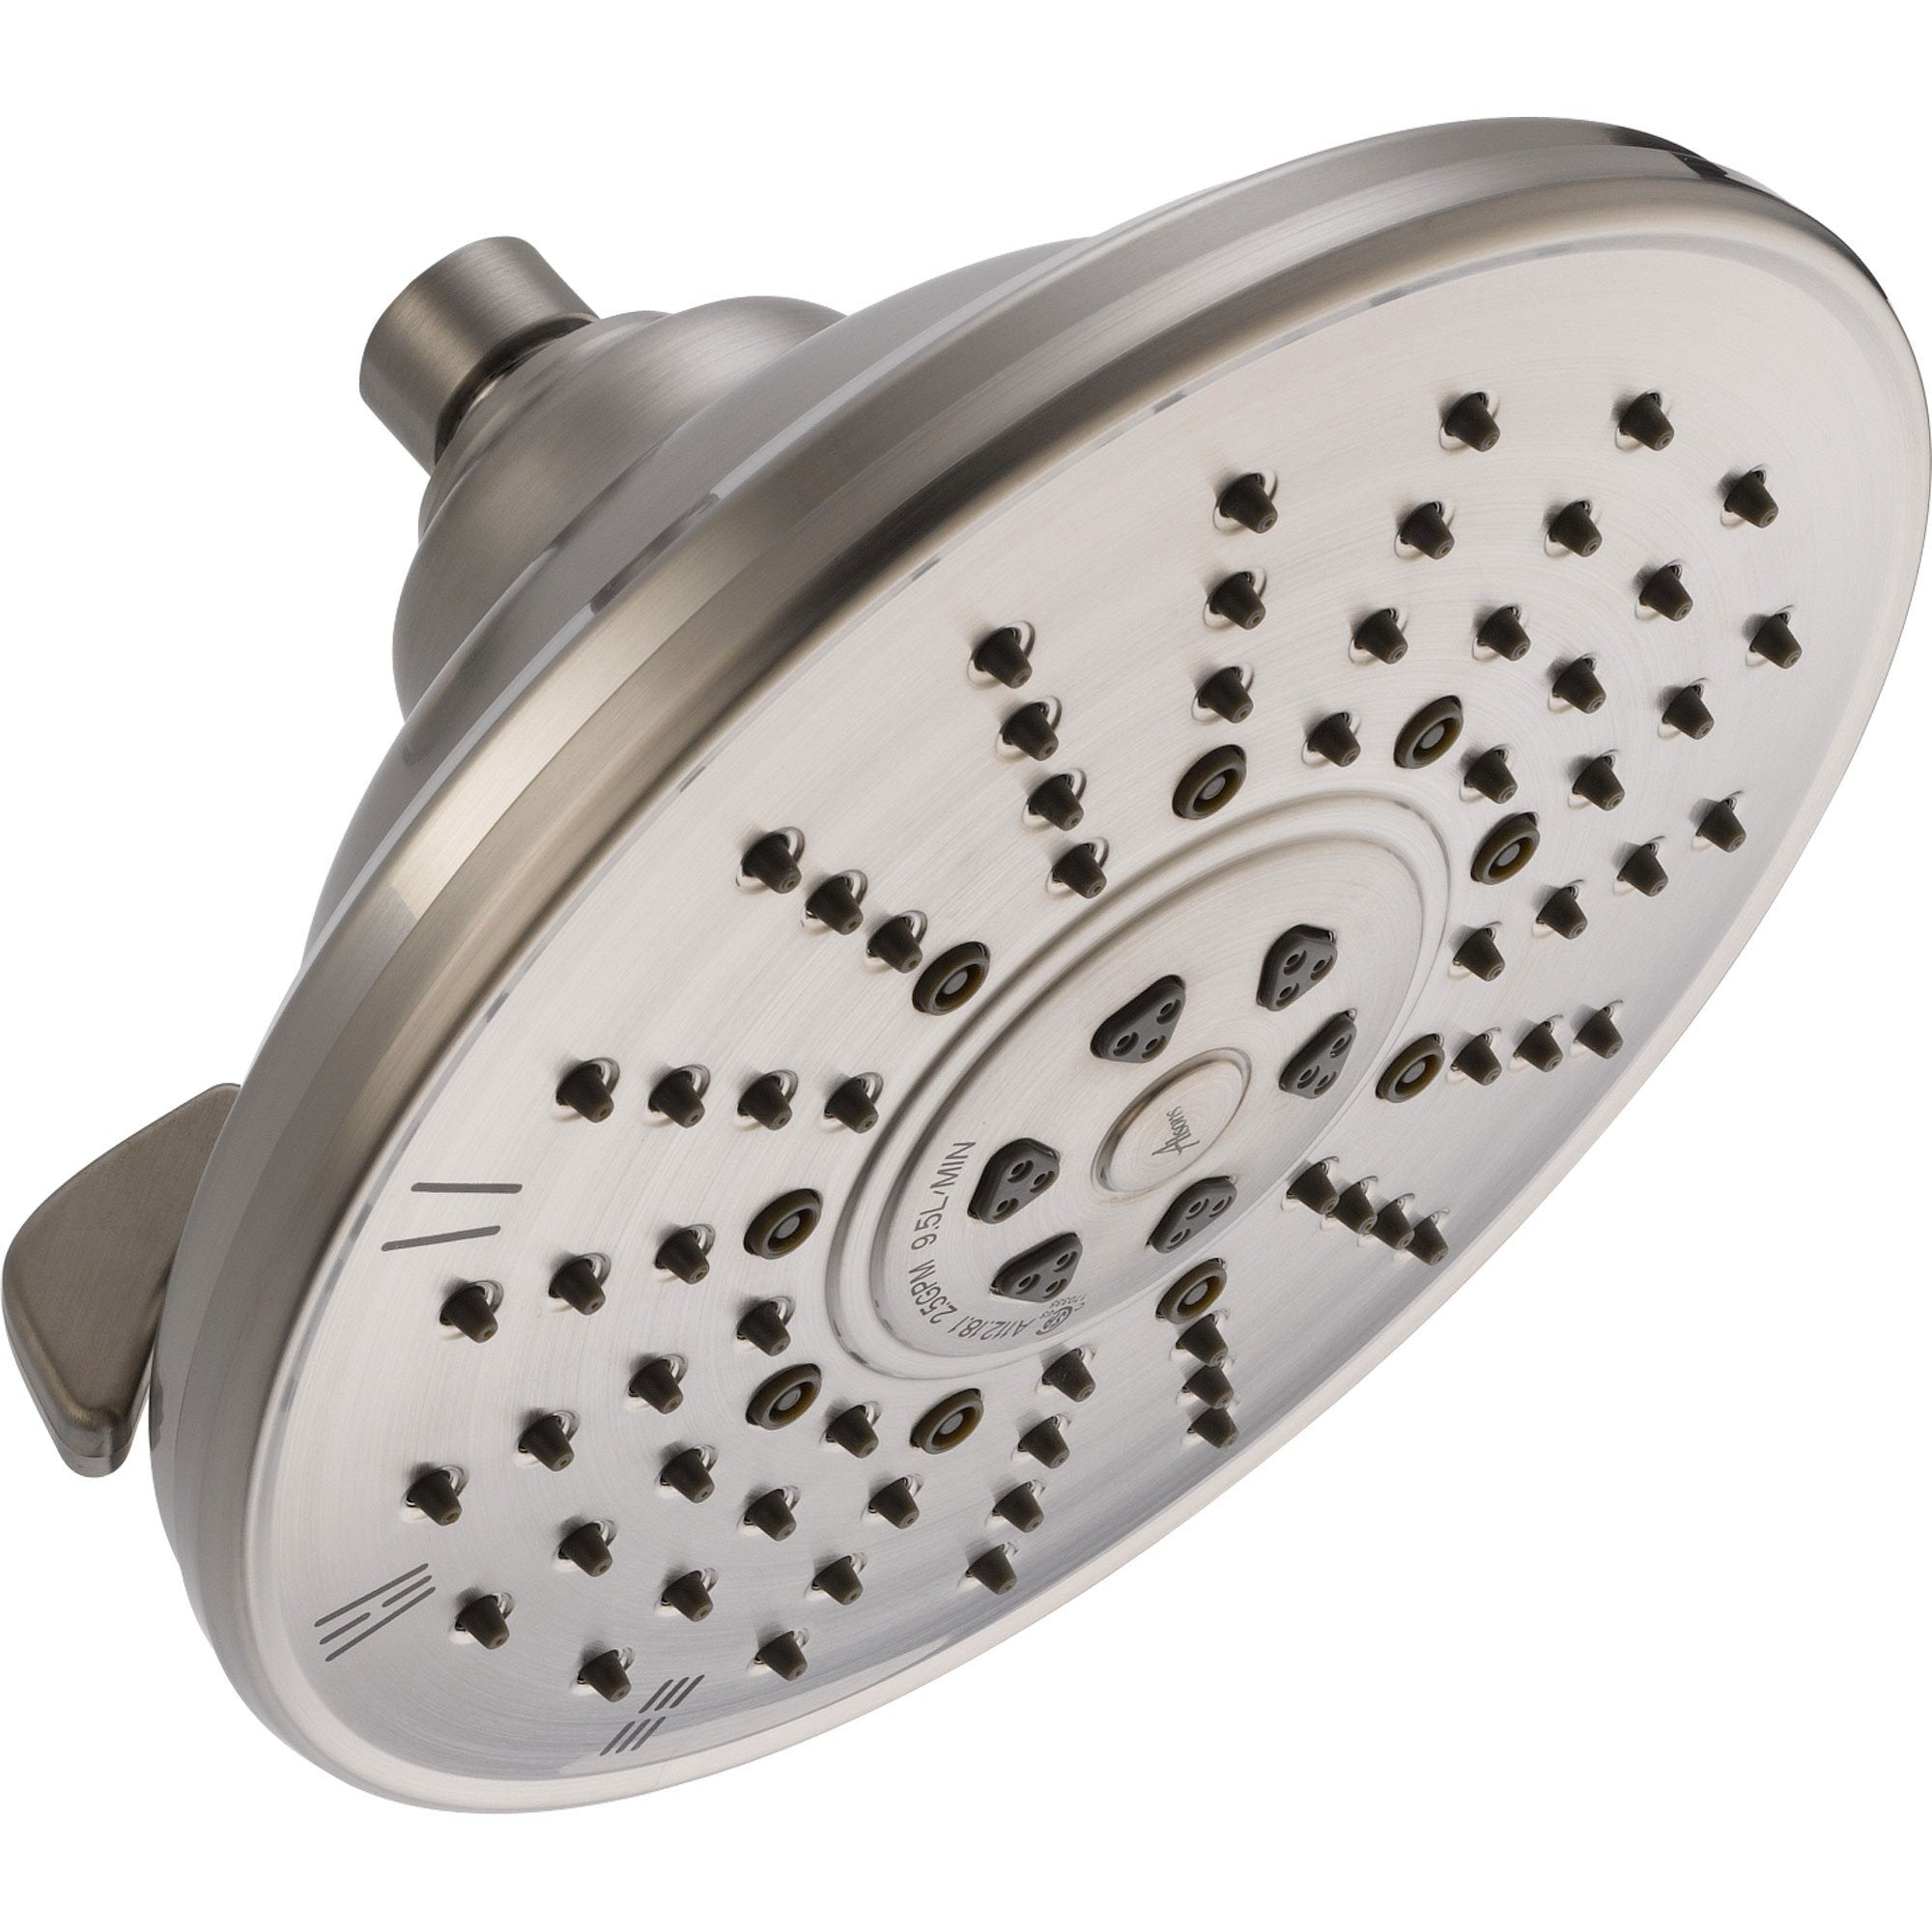 Delta 3-Spray Large Showerhead in Stainless Steel Finish 561164